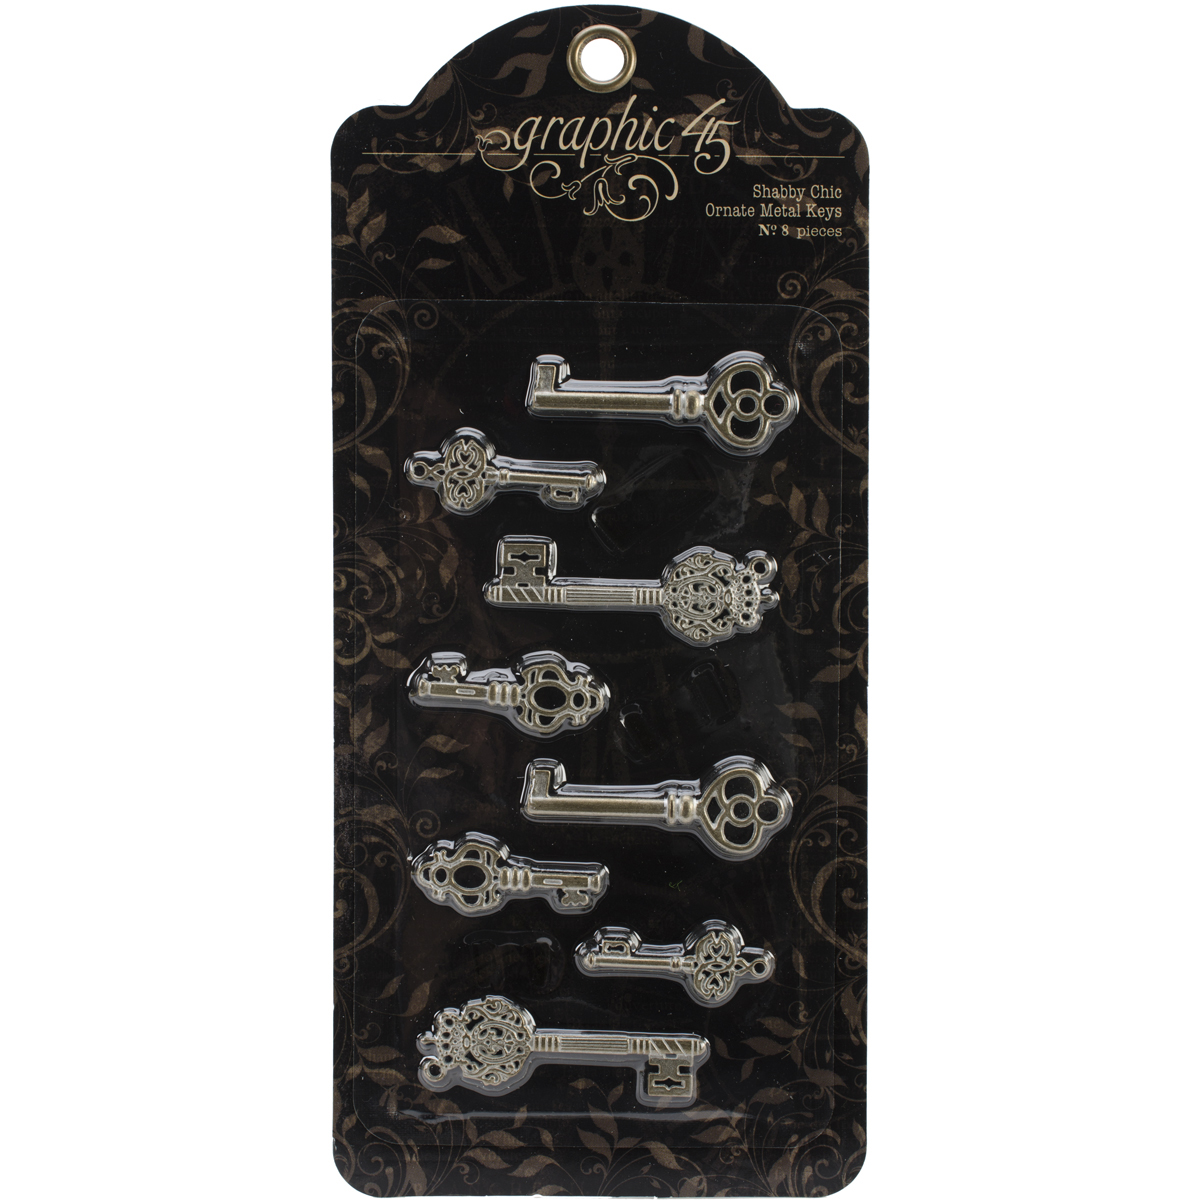 "Staples Ornate Metal Keys 8/Pkg-Shabby Chic 1.375"" To 2.125"""